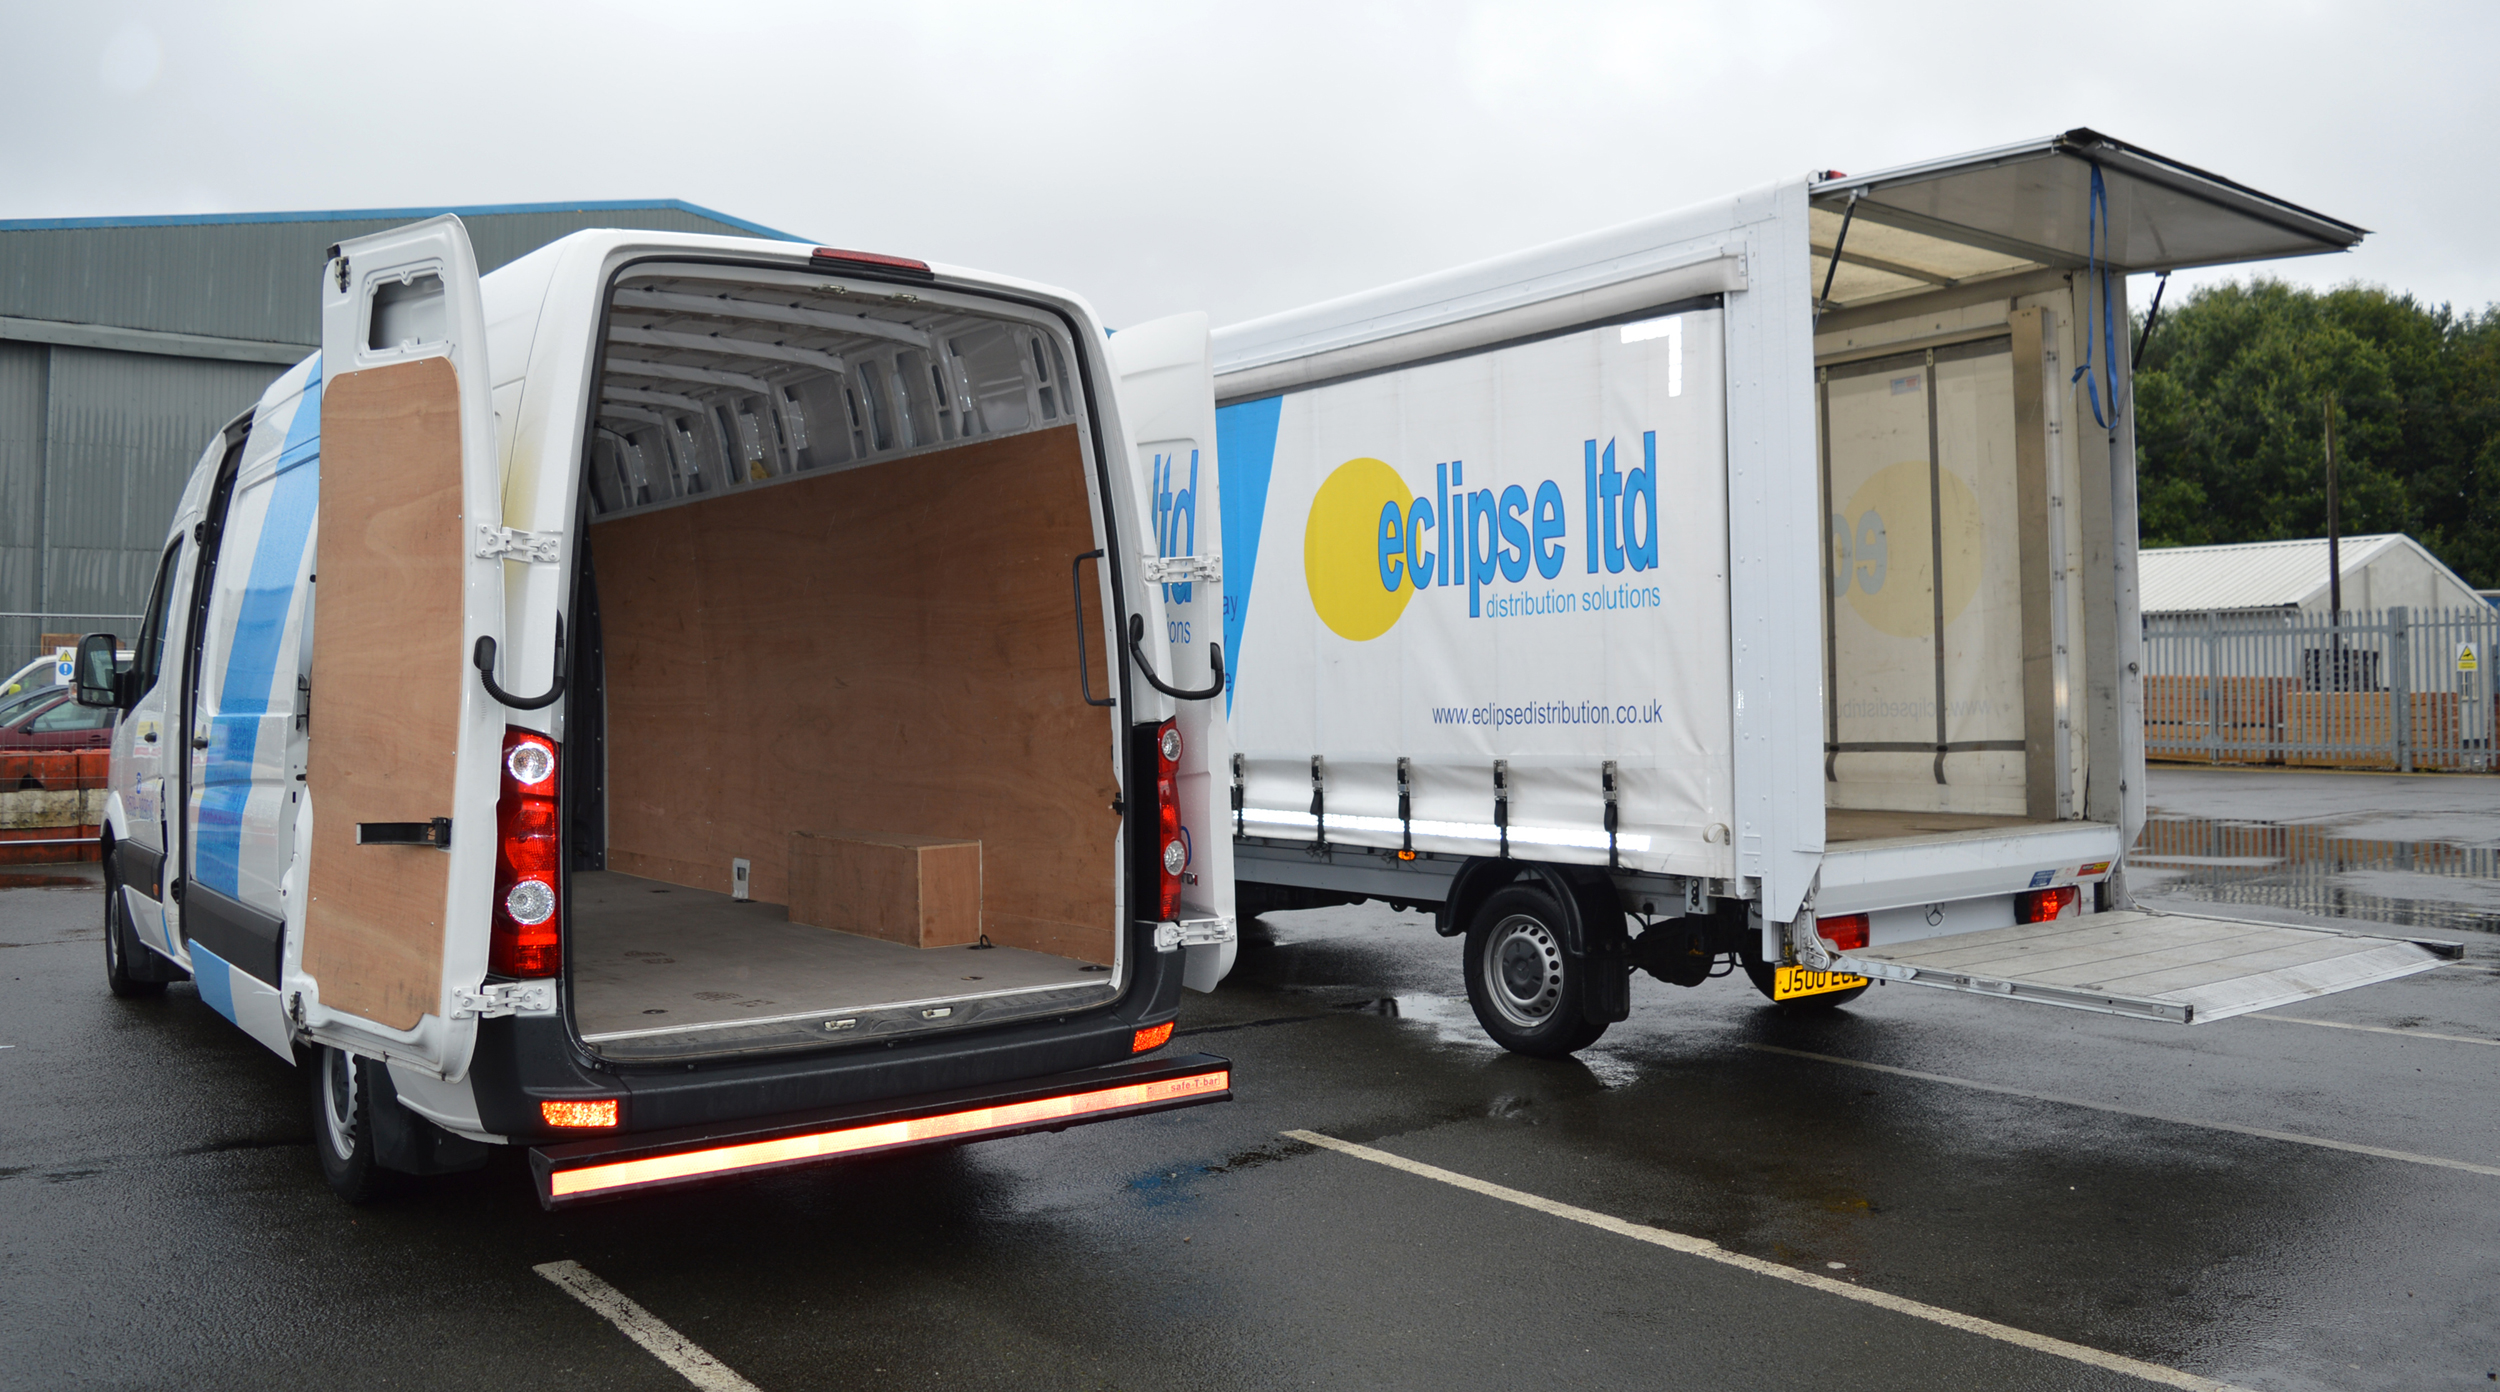 An image showing the rear view of two Eclipse Distribution Solutions Ltd vans with open doors.